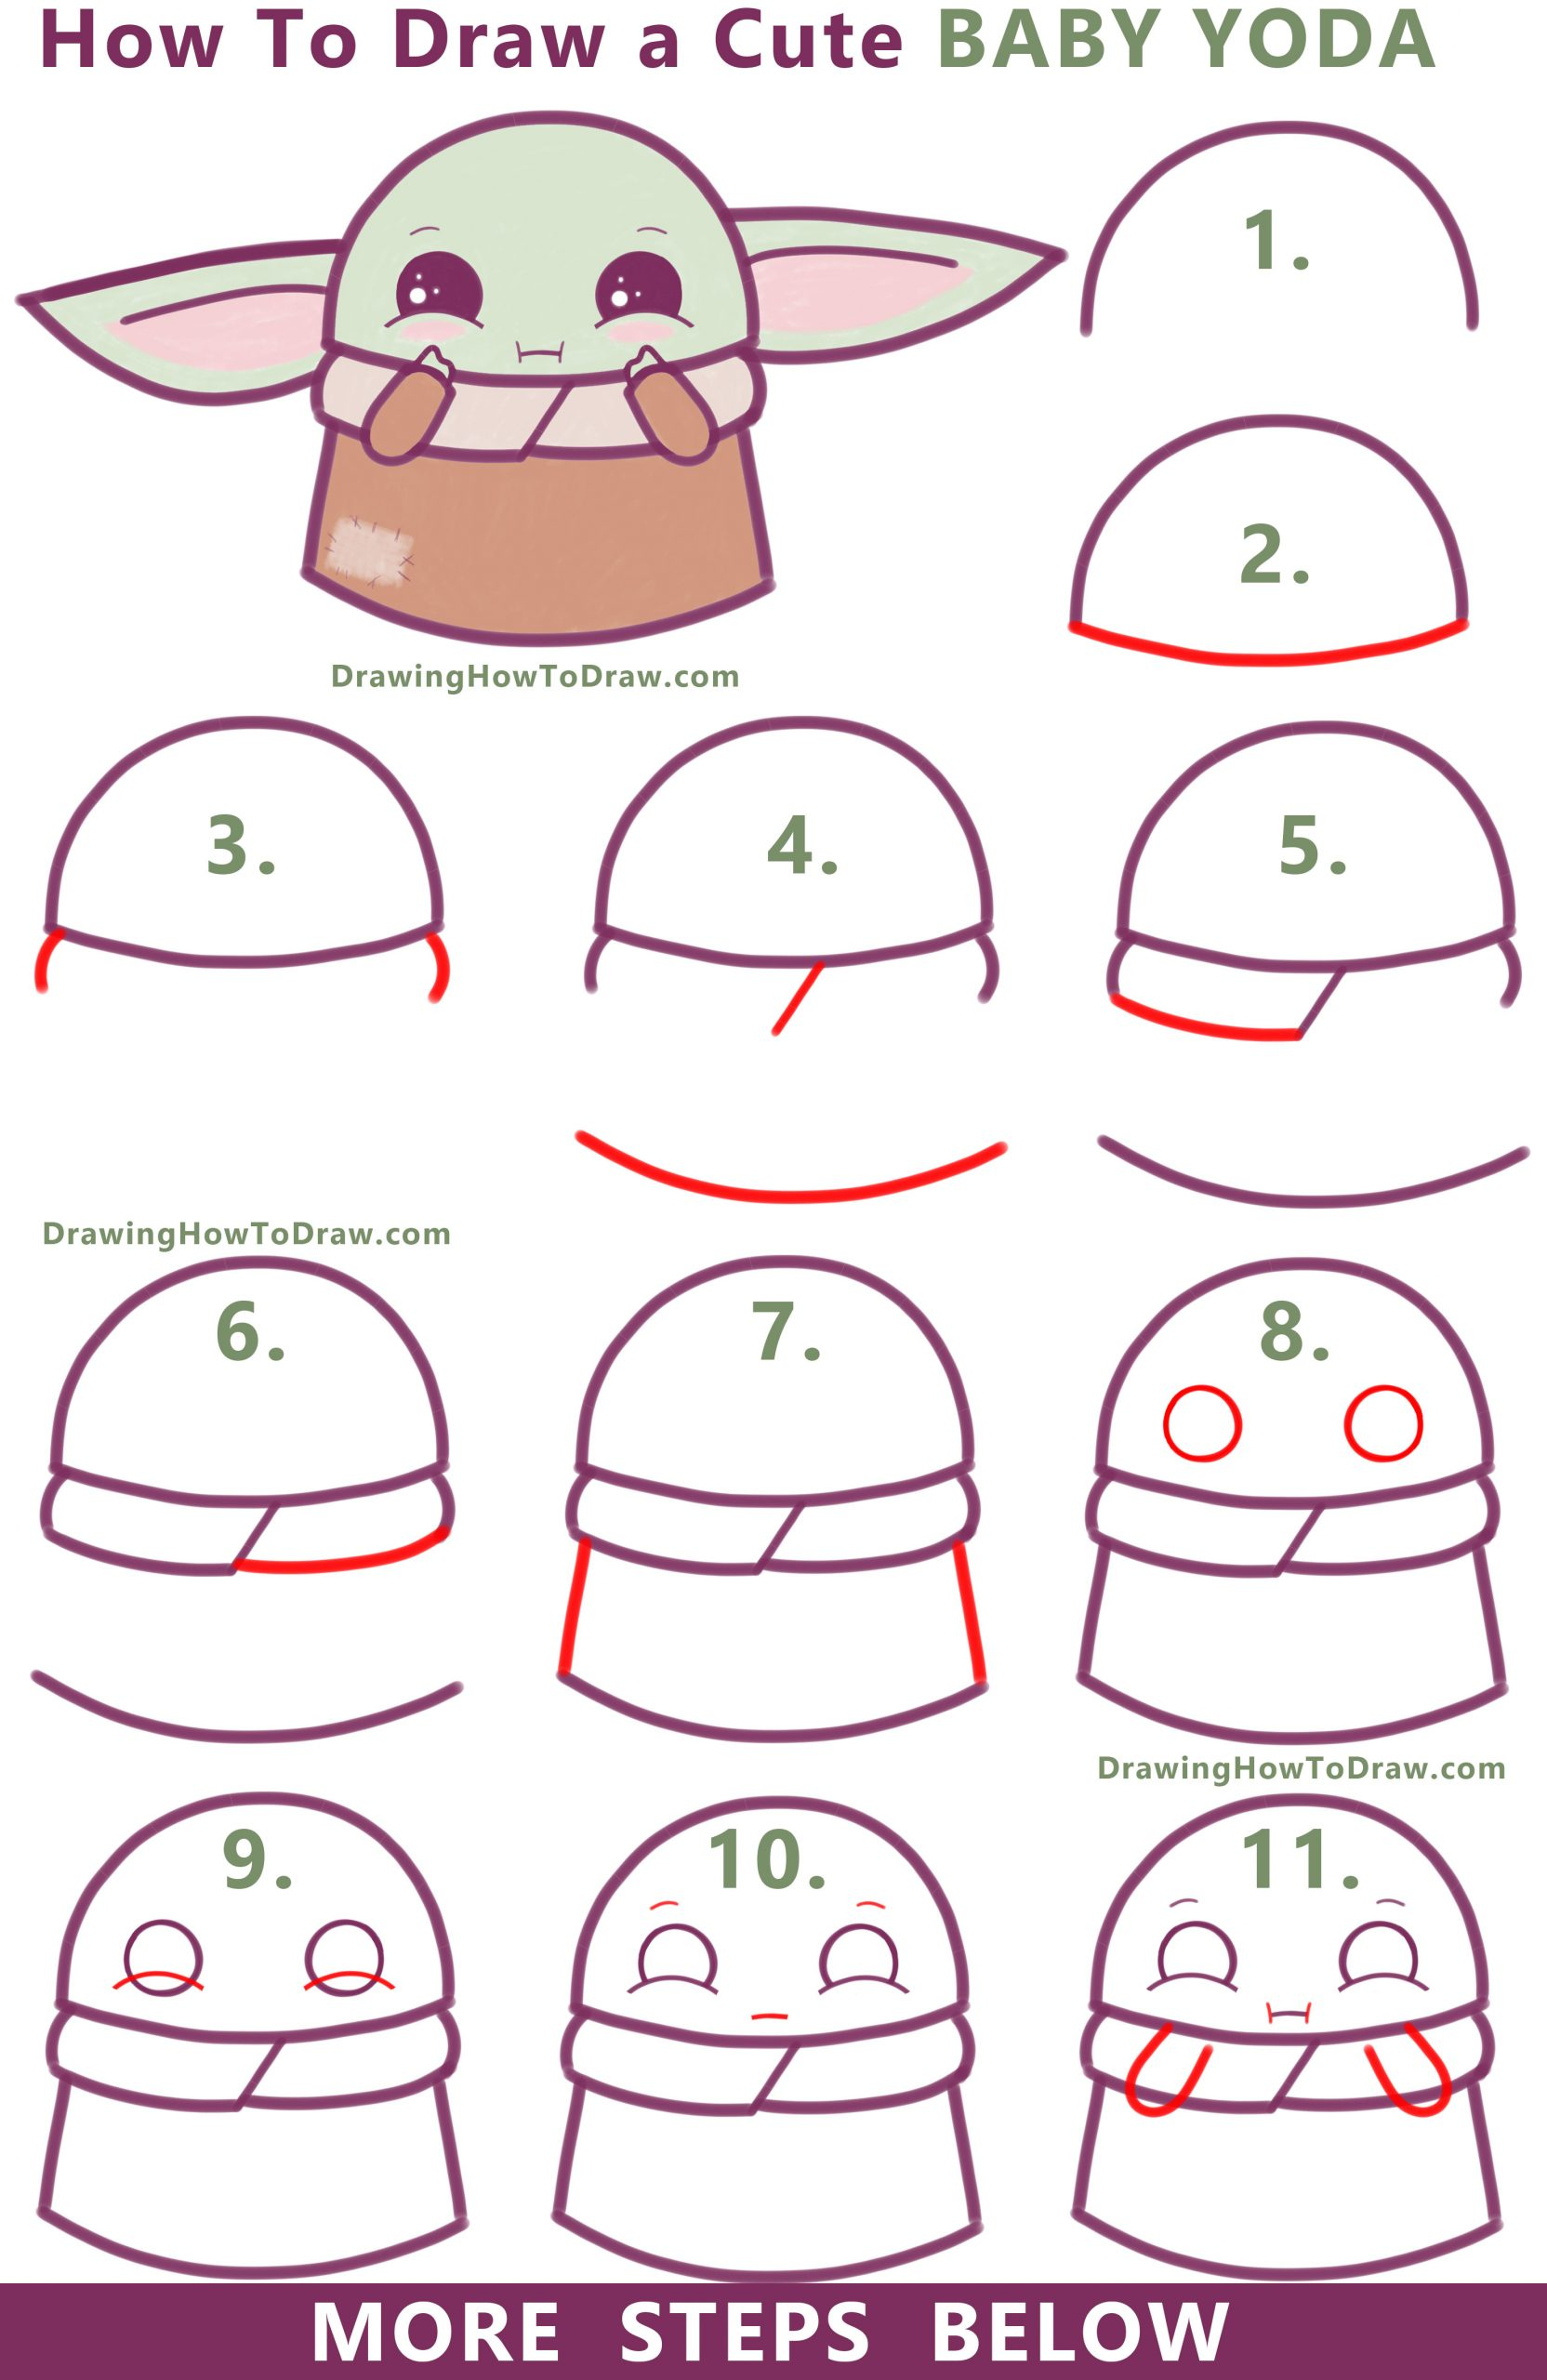 Learn How to Draw a Cute Cartoon Baby Yoda (Kawaii / Chibi) Easy Step by Step Drawing Tutorial